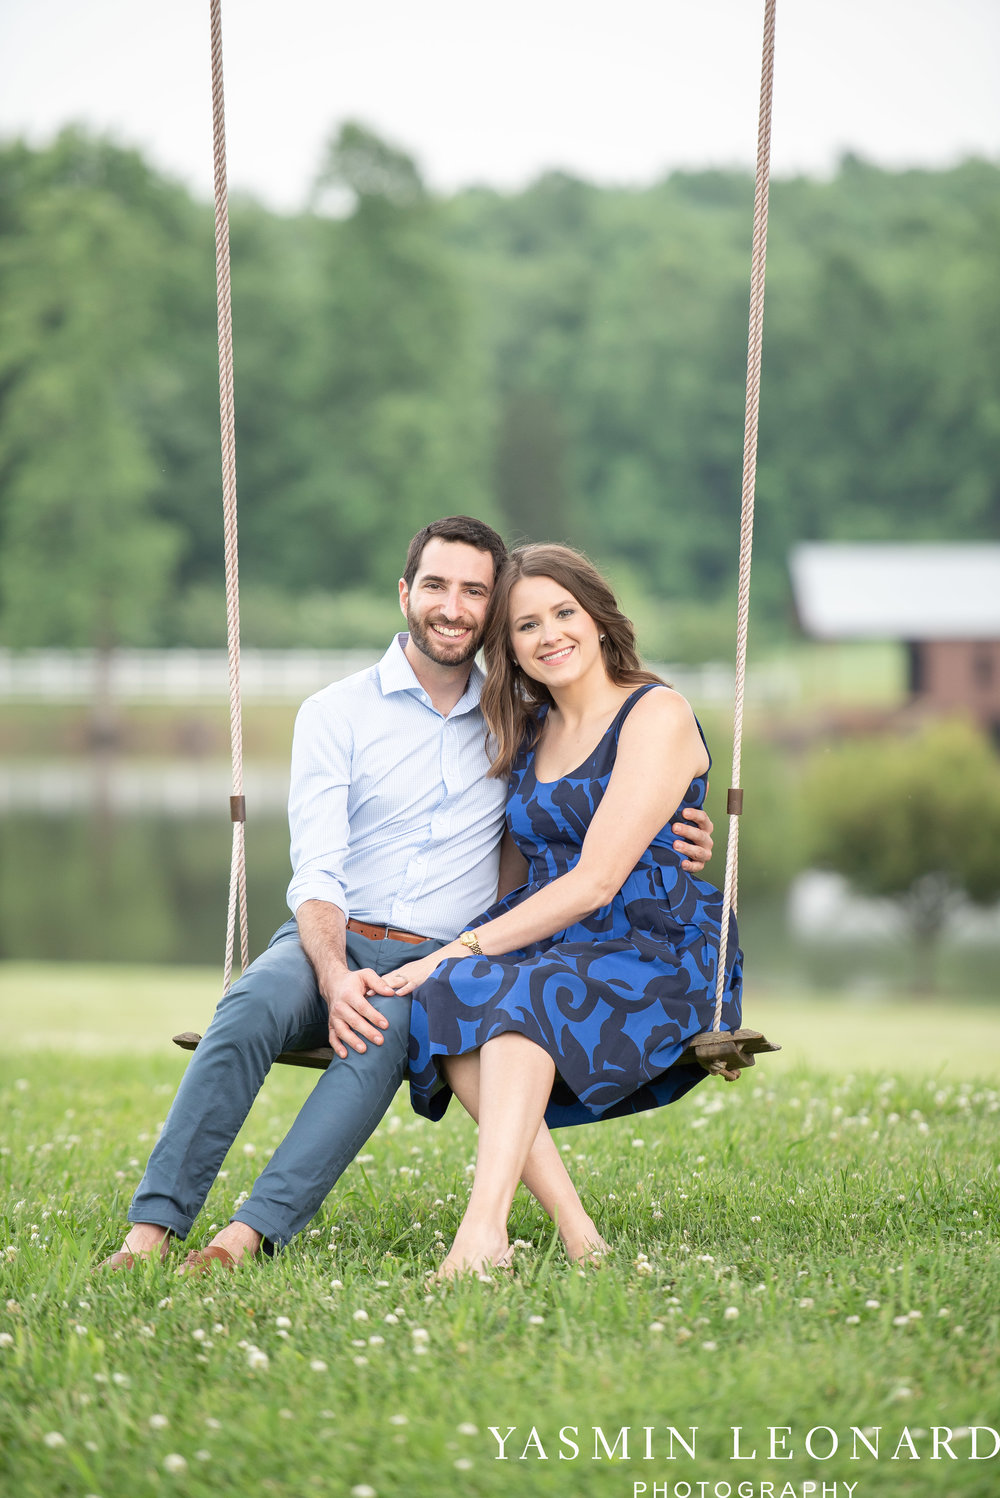 Adaumont Farm - Adaumont Farm Engagement Session - Adaumont Farm Weddings - NC Weddings - Engagement Session - ESession Ideas - Dressy Engagement Session - How to Engagement Session - How to Wedding-9.jpg